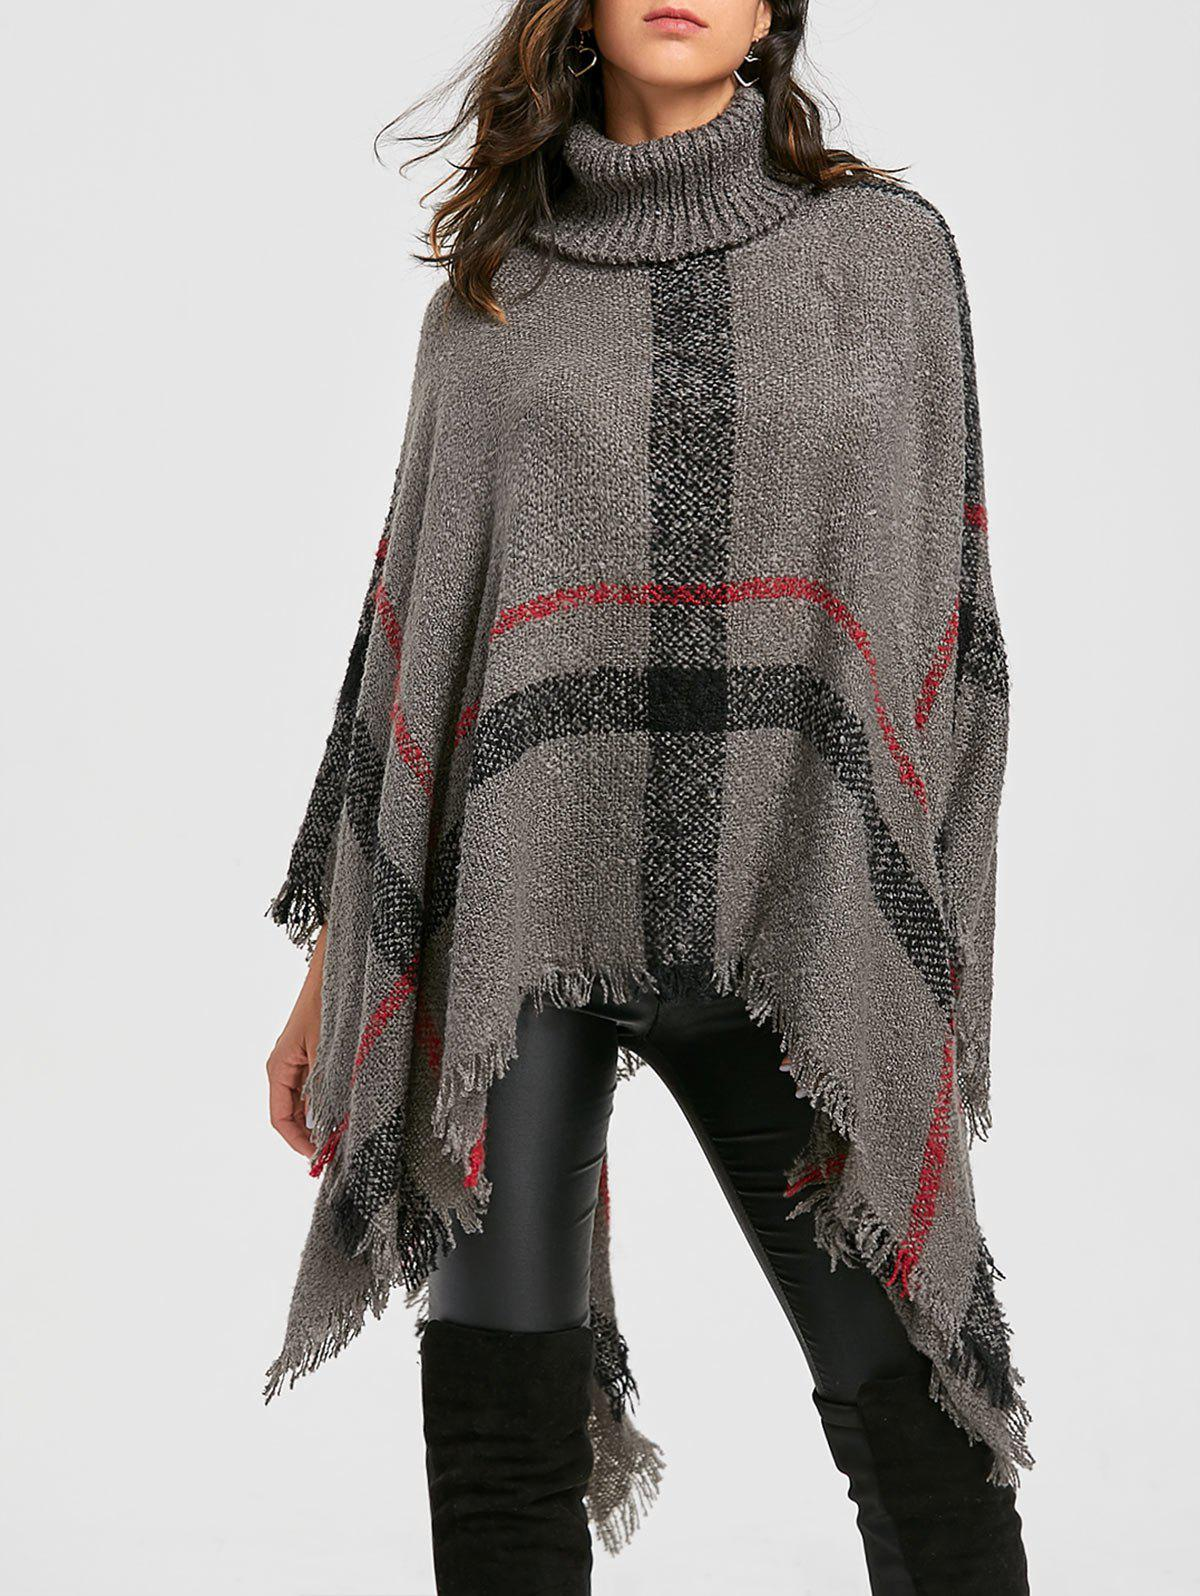 Plaid Handkerchief Turtleneck Poncho SweaterWOMEN<br><br>Size: ONE SIZE; Color: GRAY; Type: Pullovers; Material: Polyester; Sleeve Length: Full; Collar: Turtleneck; Style: Fashion; Pattern Type: Plaid; Embellishment: Tassel; Season: Fall,Spring; Weight: 0.5700kg; Package Contents: 1 x Sweater;